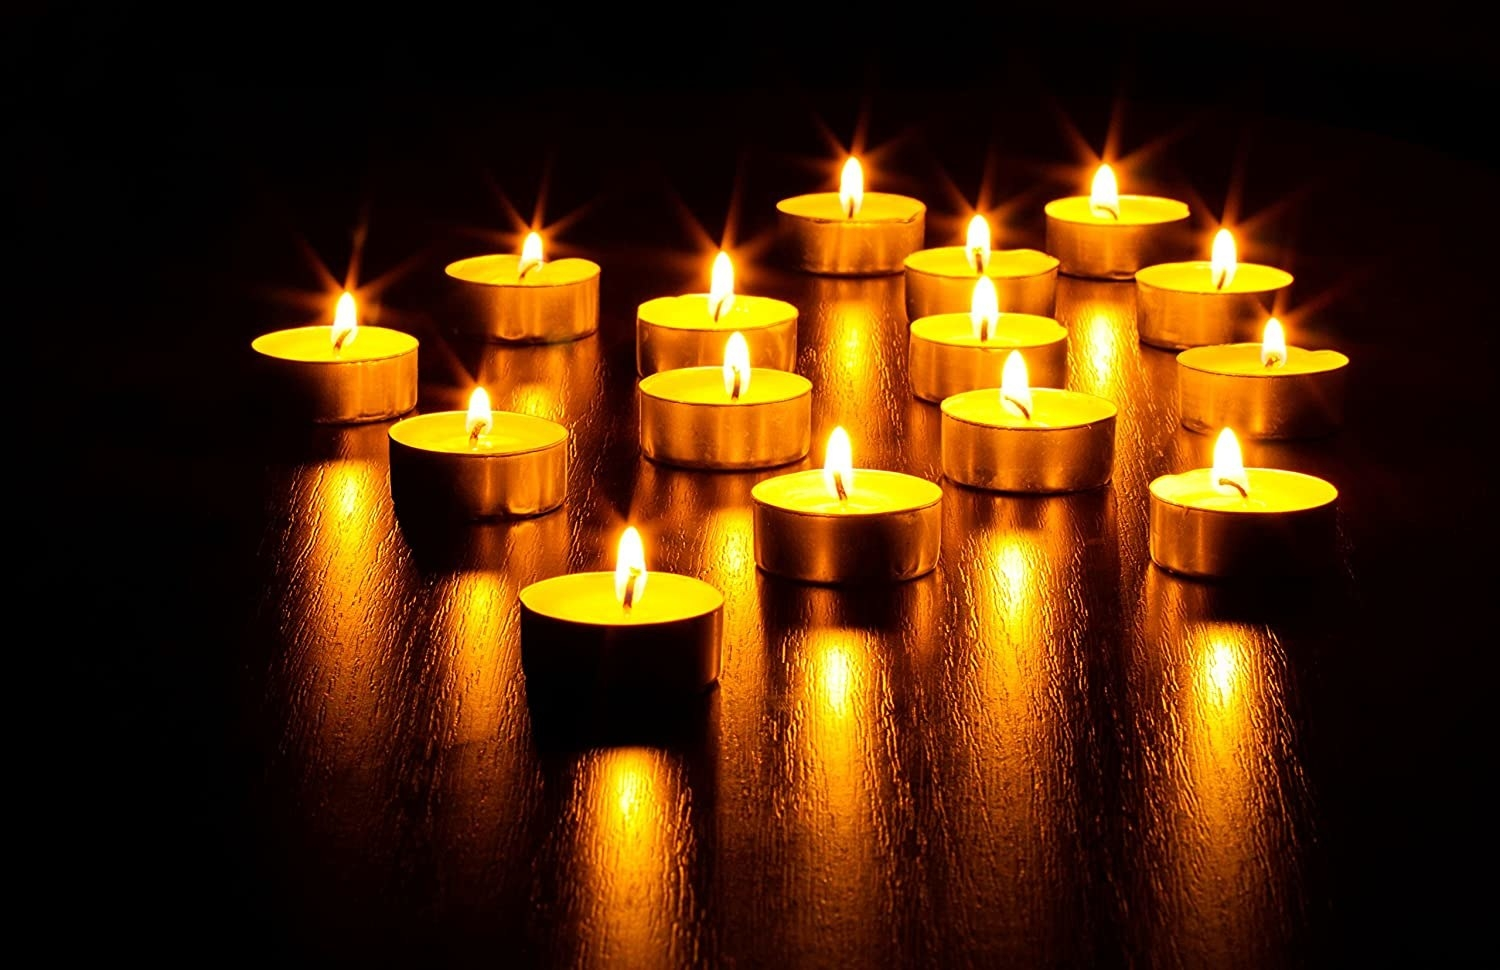 Several tiny candles aflame